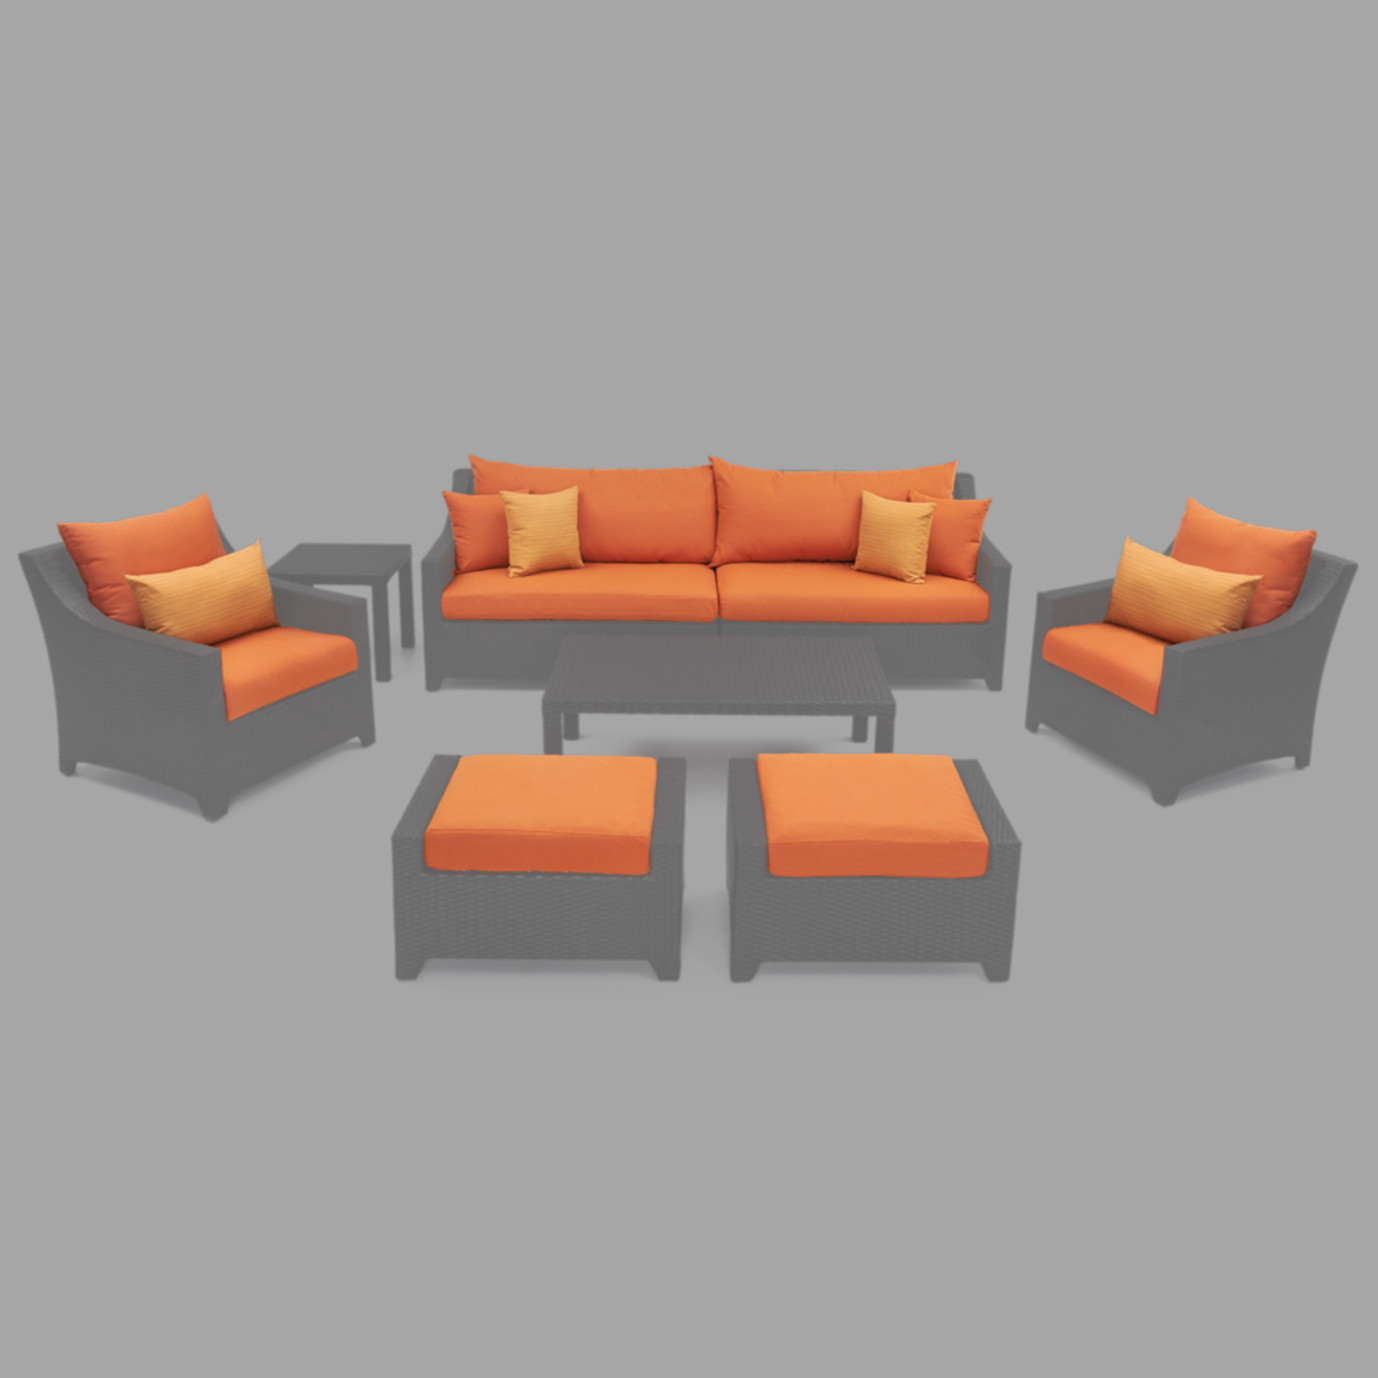 Modular Outdoor 8pc Club Cushion Cover Set - Tikka Orange